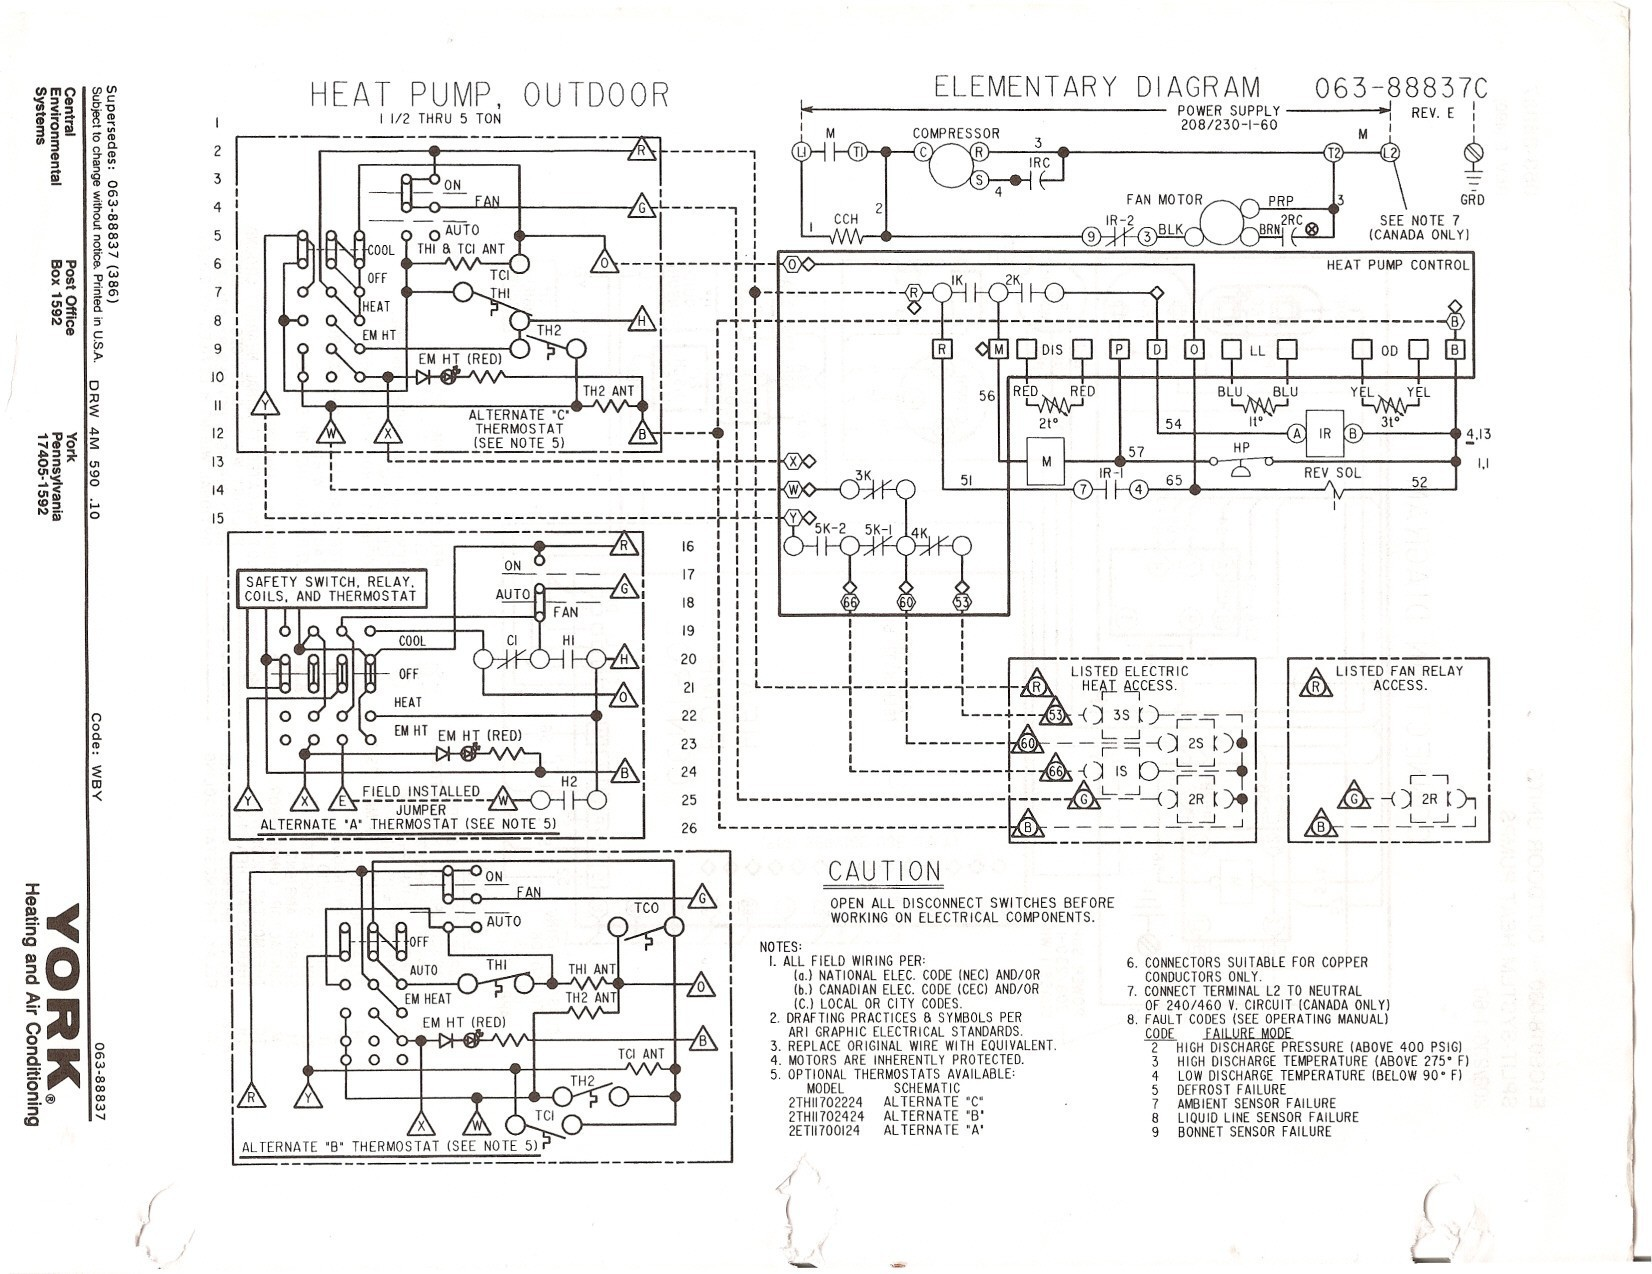 Heat Pump Wiring Diagram Inspirational Electric Heat Strip Wiring Diagram Diagram Of Heat Pump Wiring Diagram Inspirational Electric Heat Strip Wiring Diagram Diagram